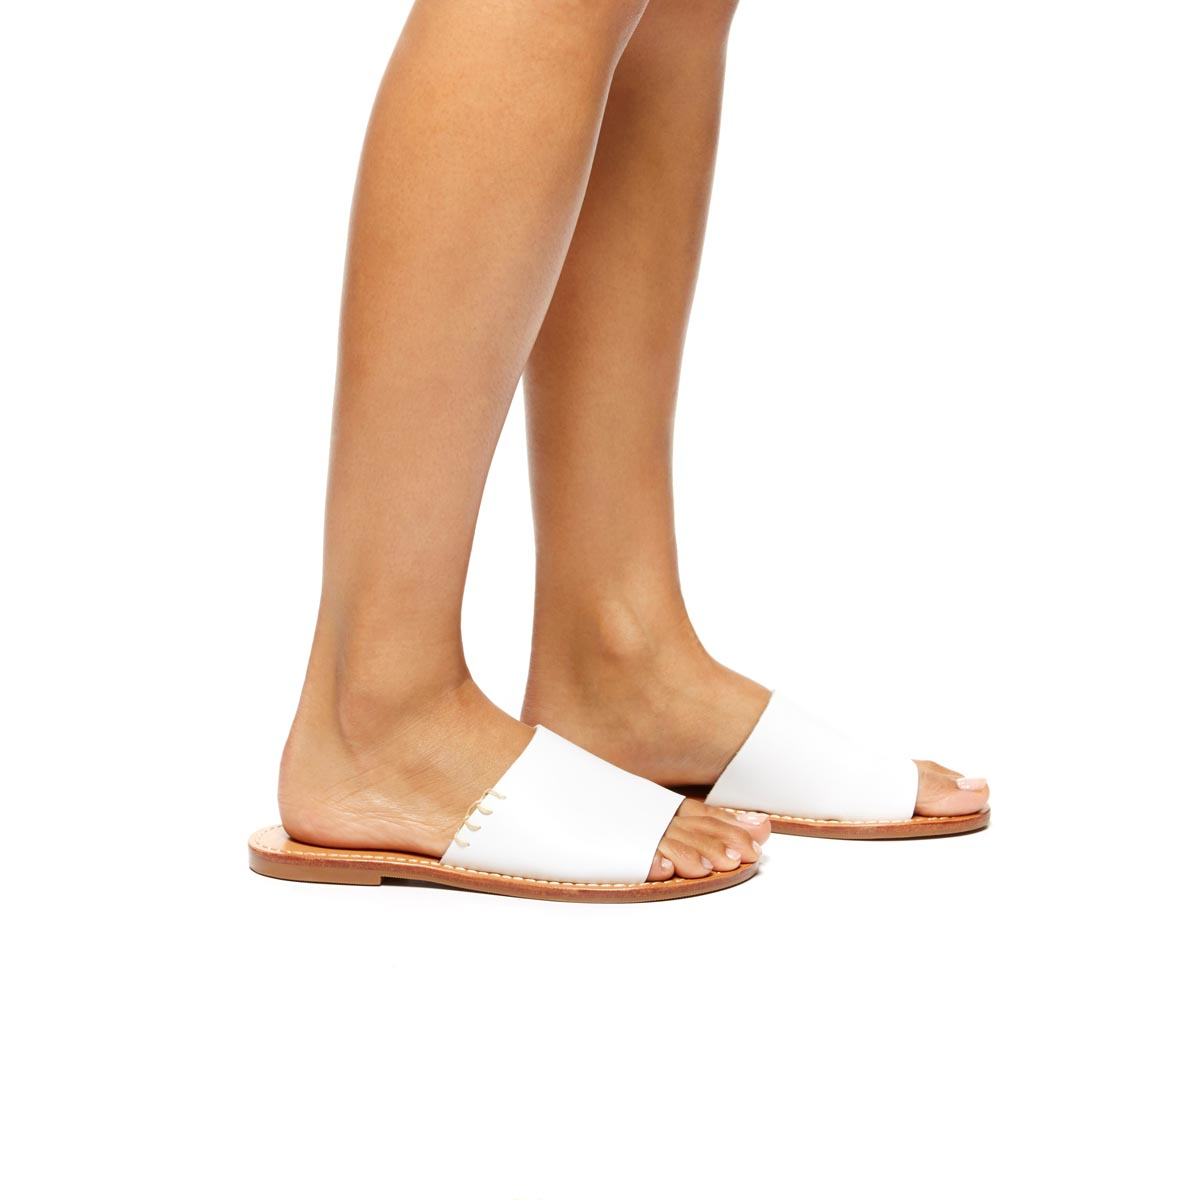 Soludos Leather Slide Sandal in Leather